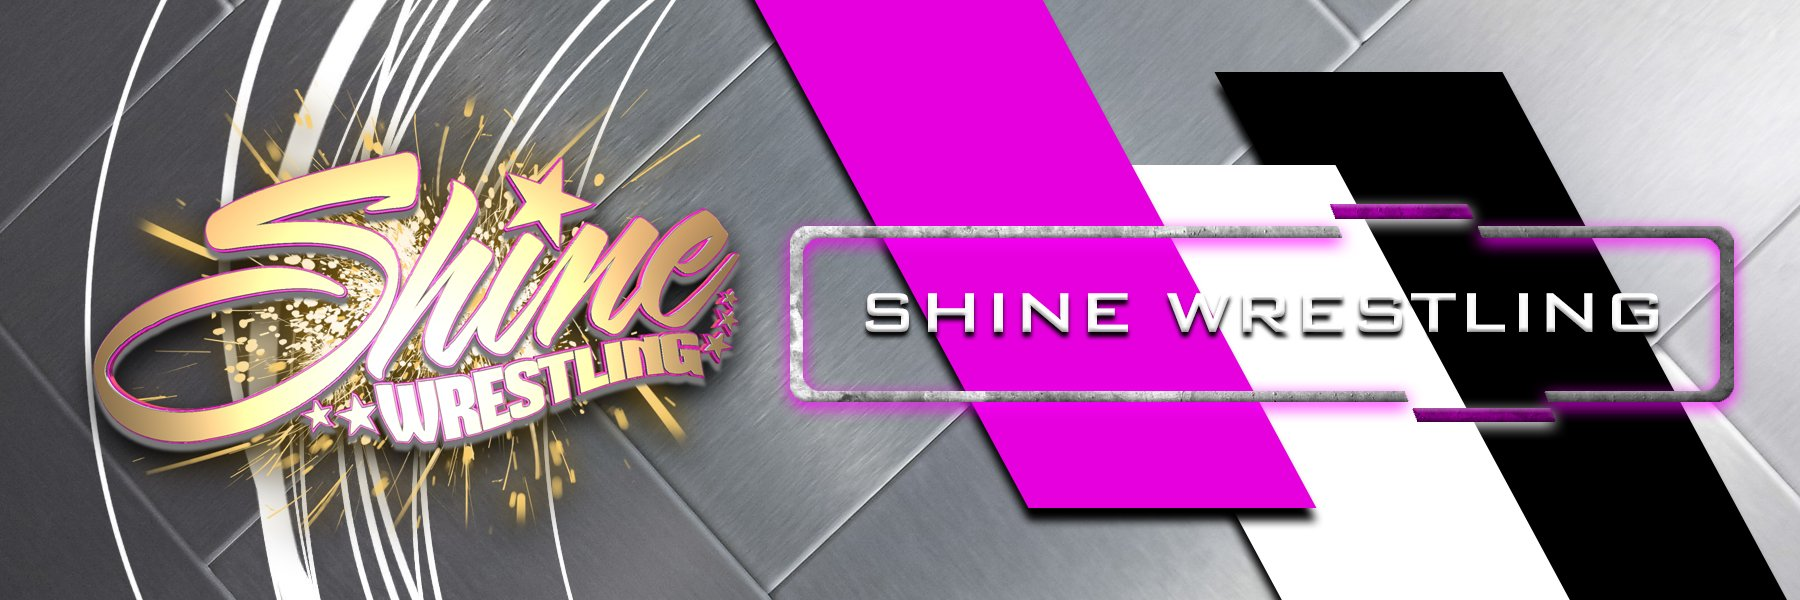 Shine Wrestling! Bringing women's wrestling action to the world!